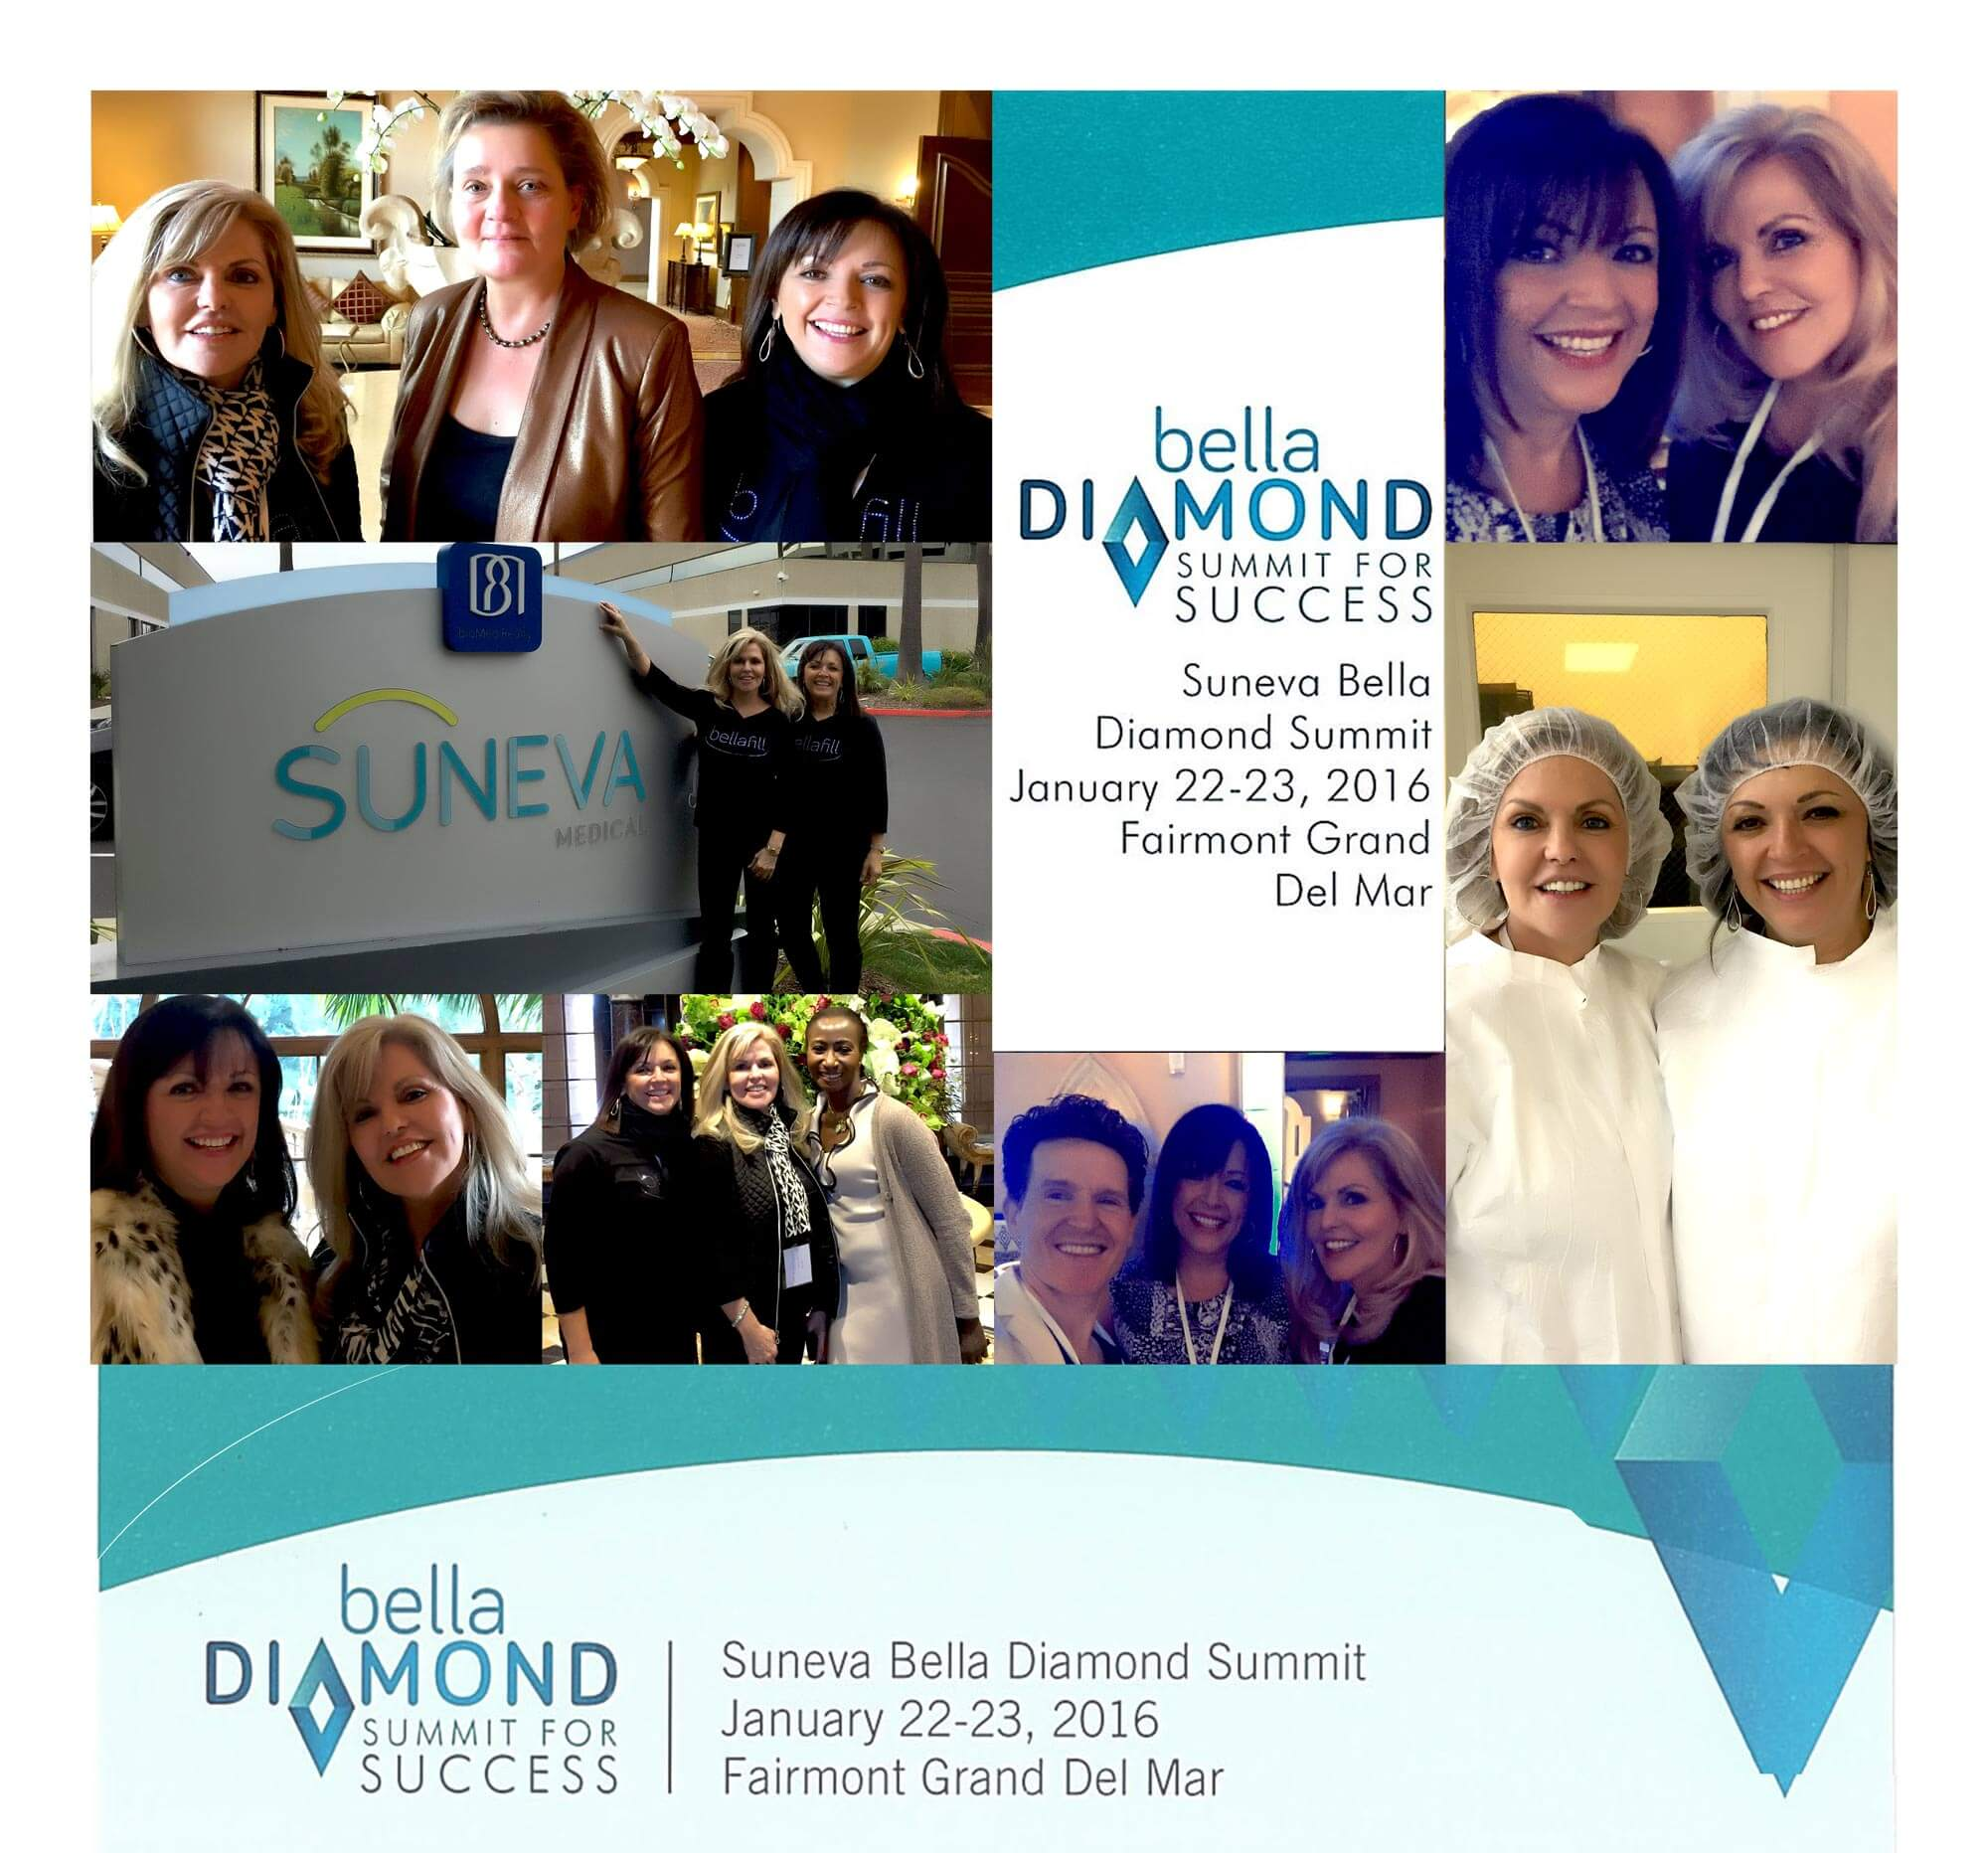 Bella Diamond Summit for Success